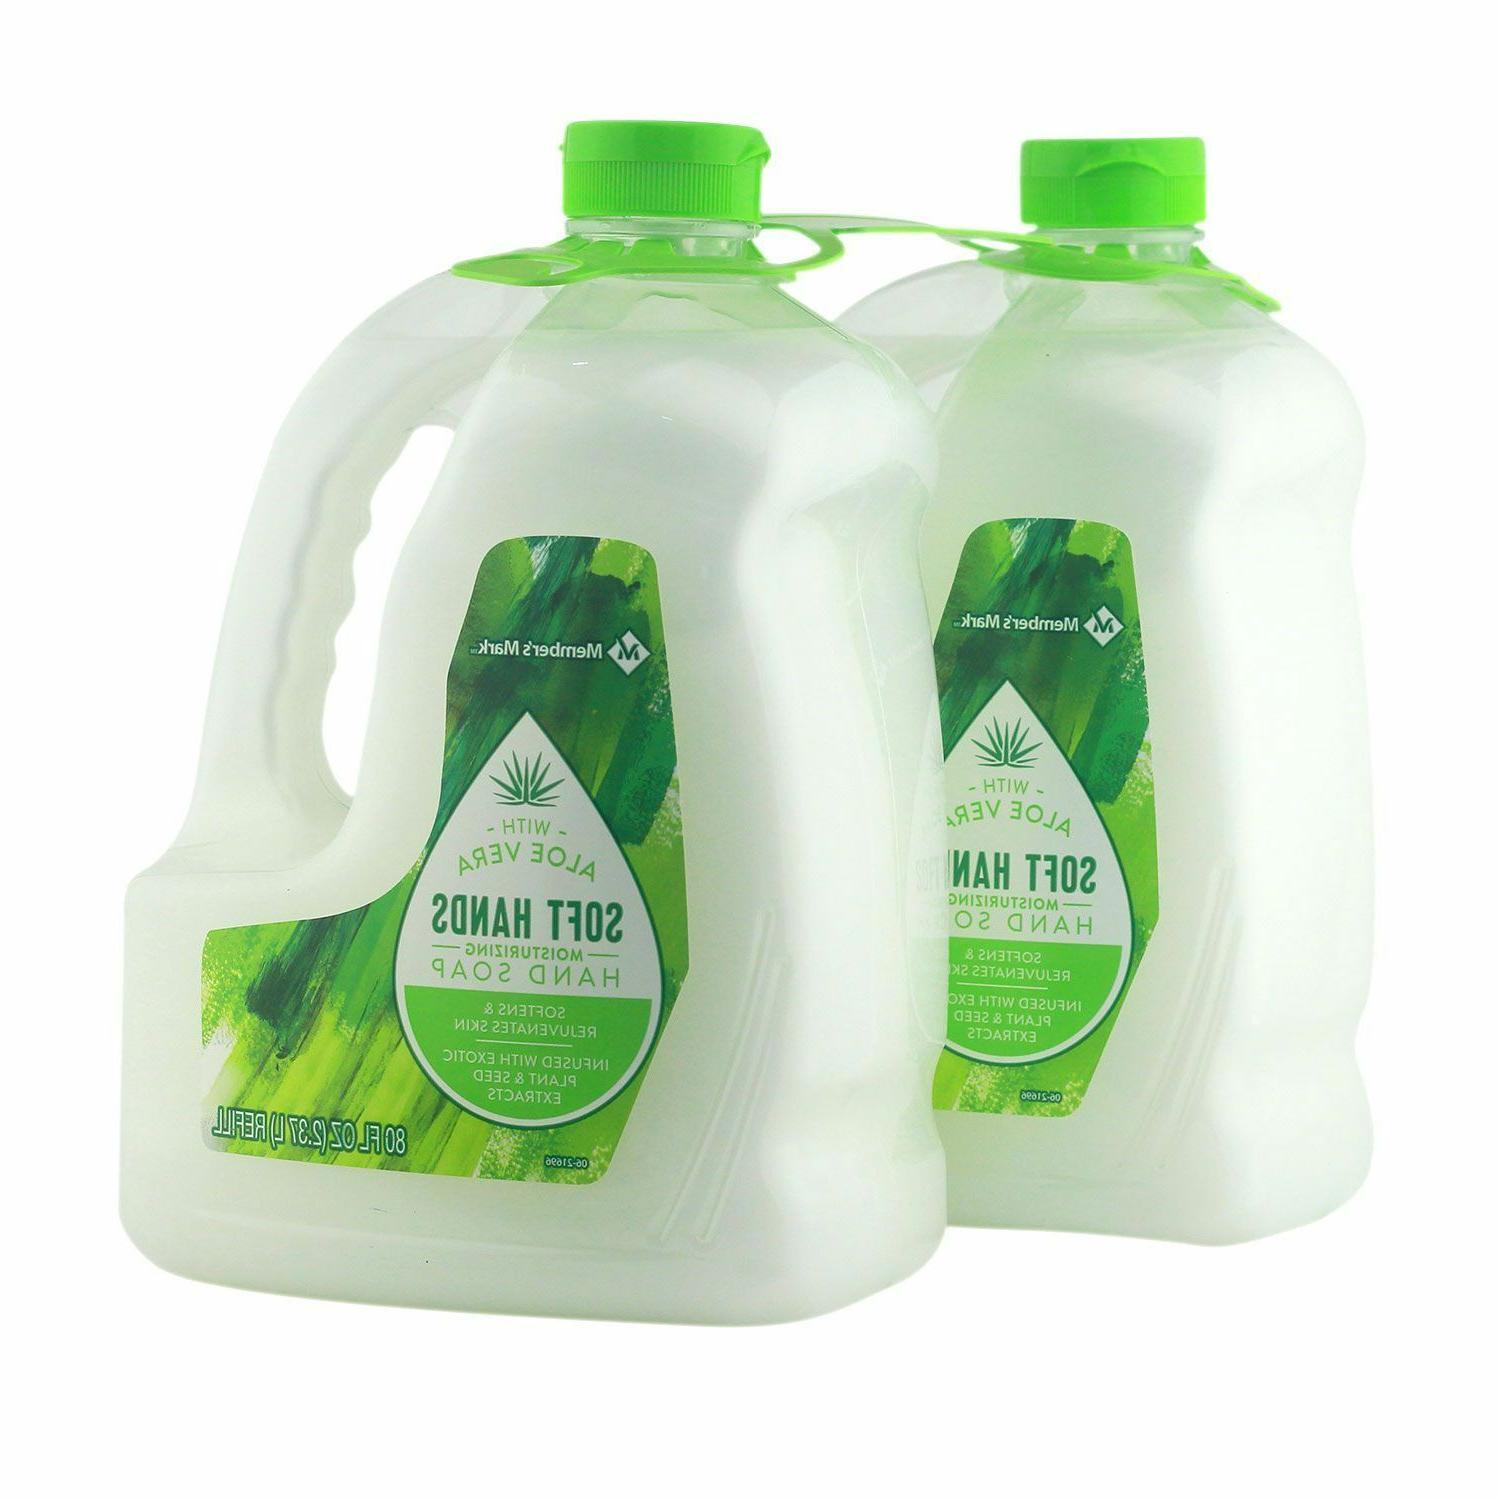 Aloe Vera Mild Gentle Formula Seeds 2-pack